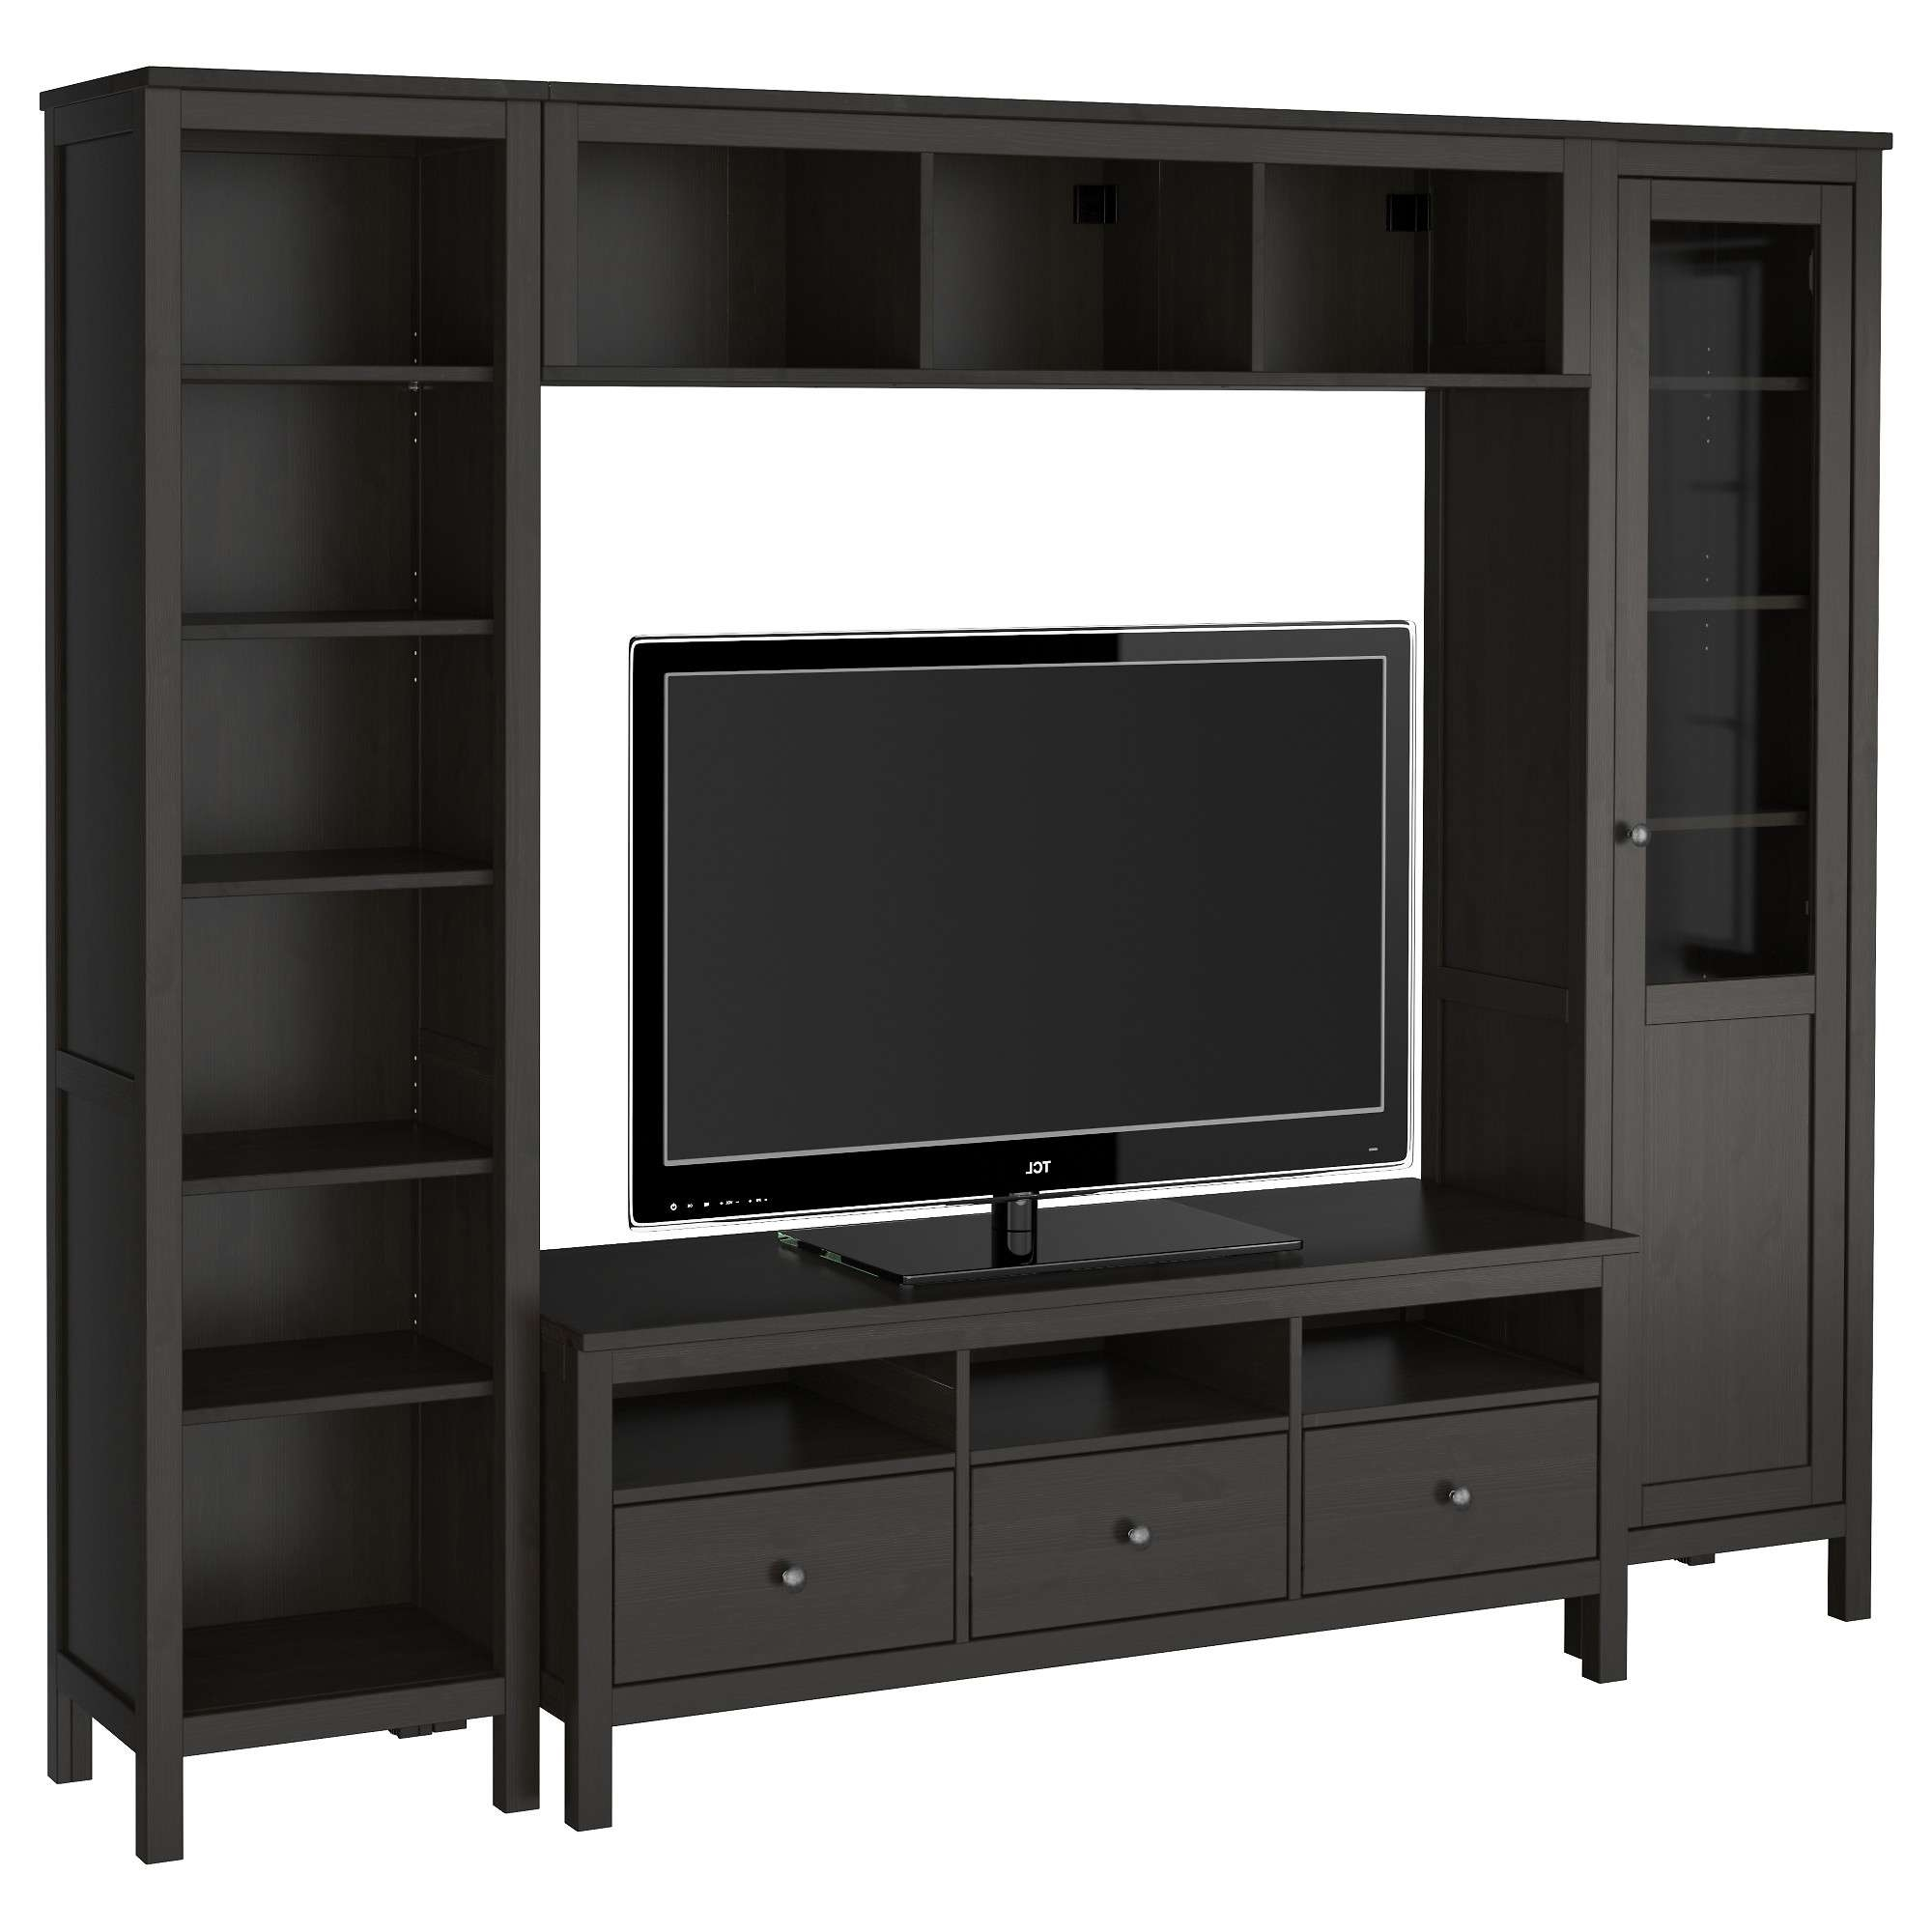 2018 Latest Tv Stands At Ikea